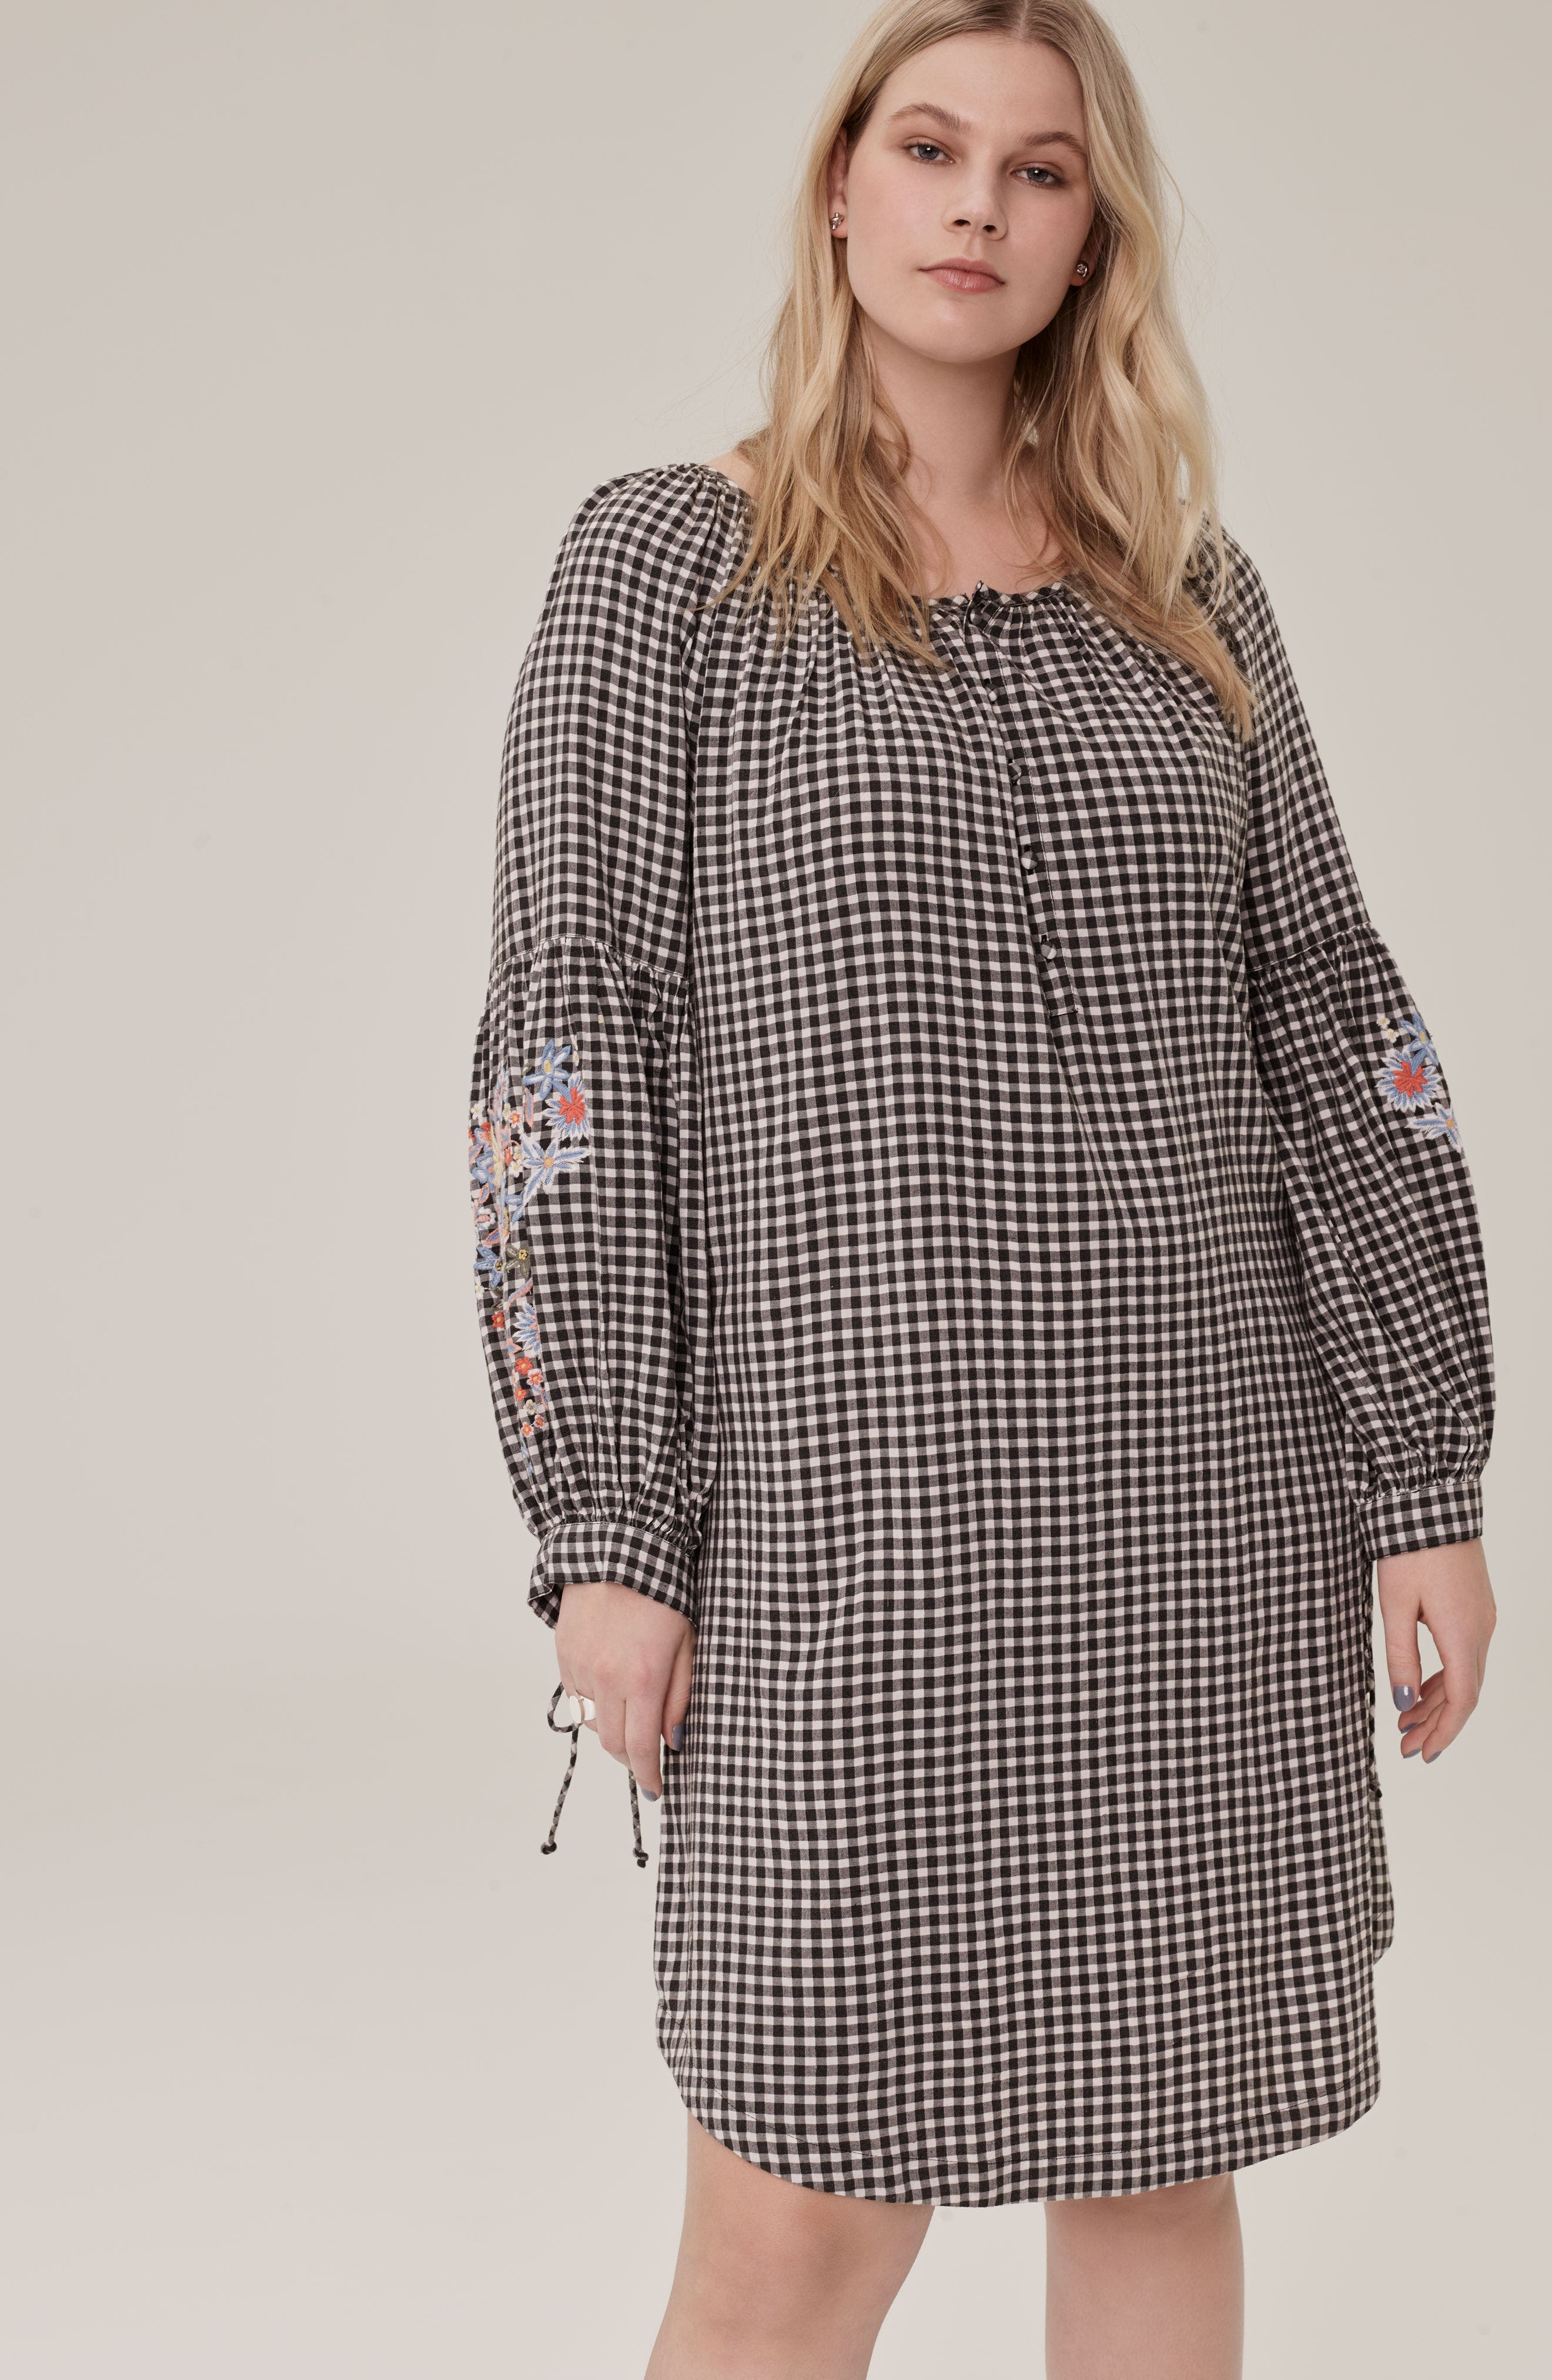 Embroidered Puff Sleeve Gingham Shift Dress,                             Alternate thumbnail 2, color,                             Black-White Gingham